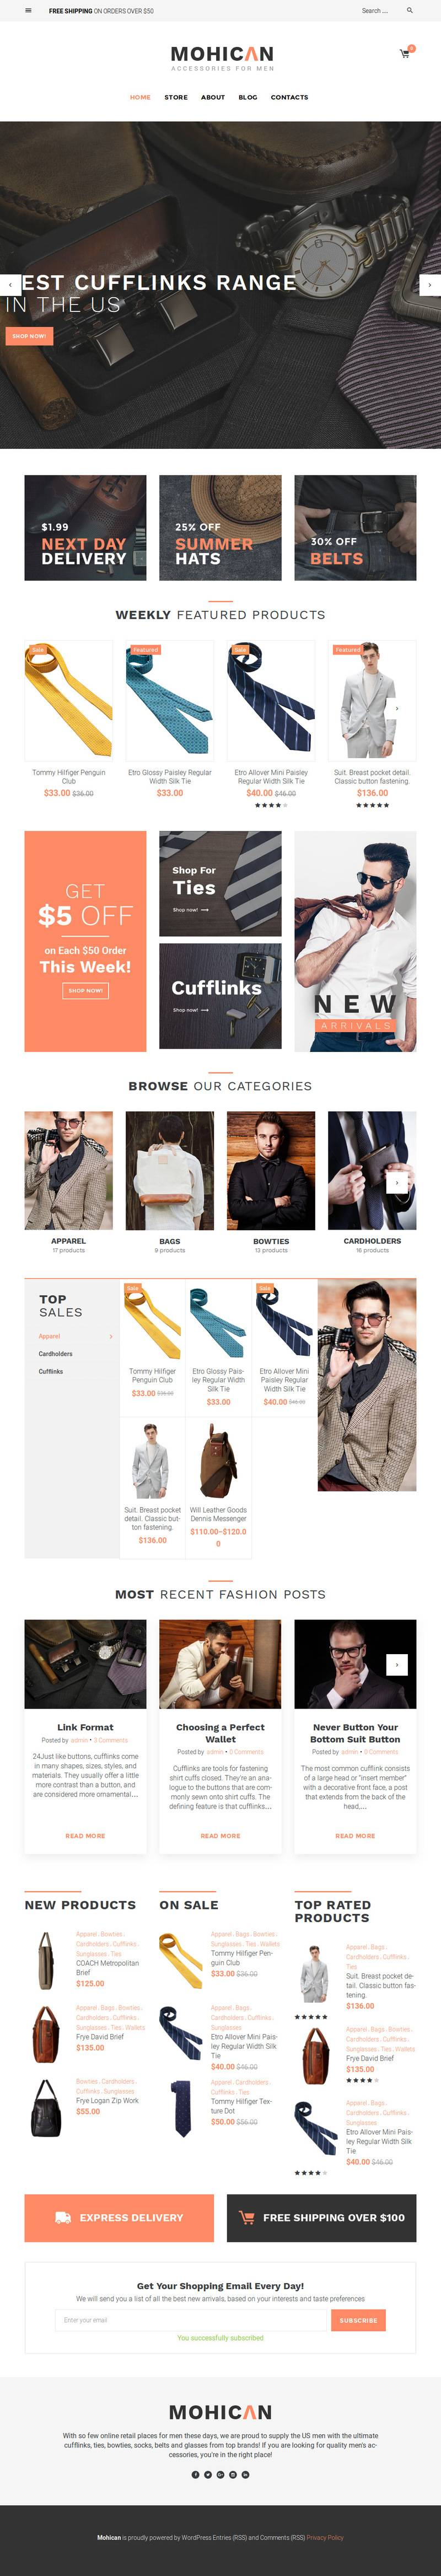 mohican templatemonster woocommerce theme 01 1 - mohican-templatemonster-woocommerce-theme-01